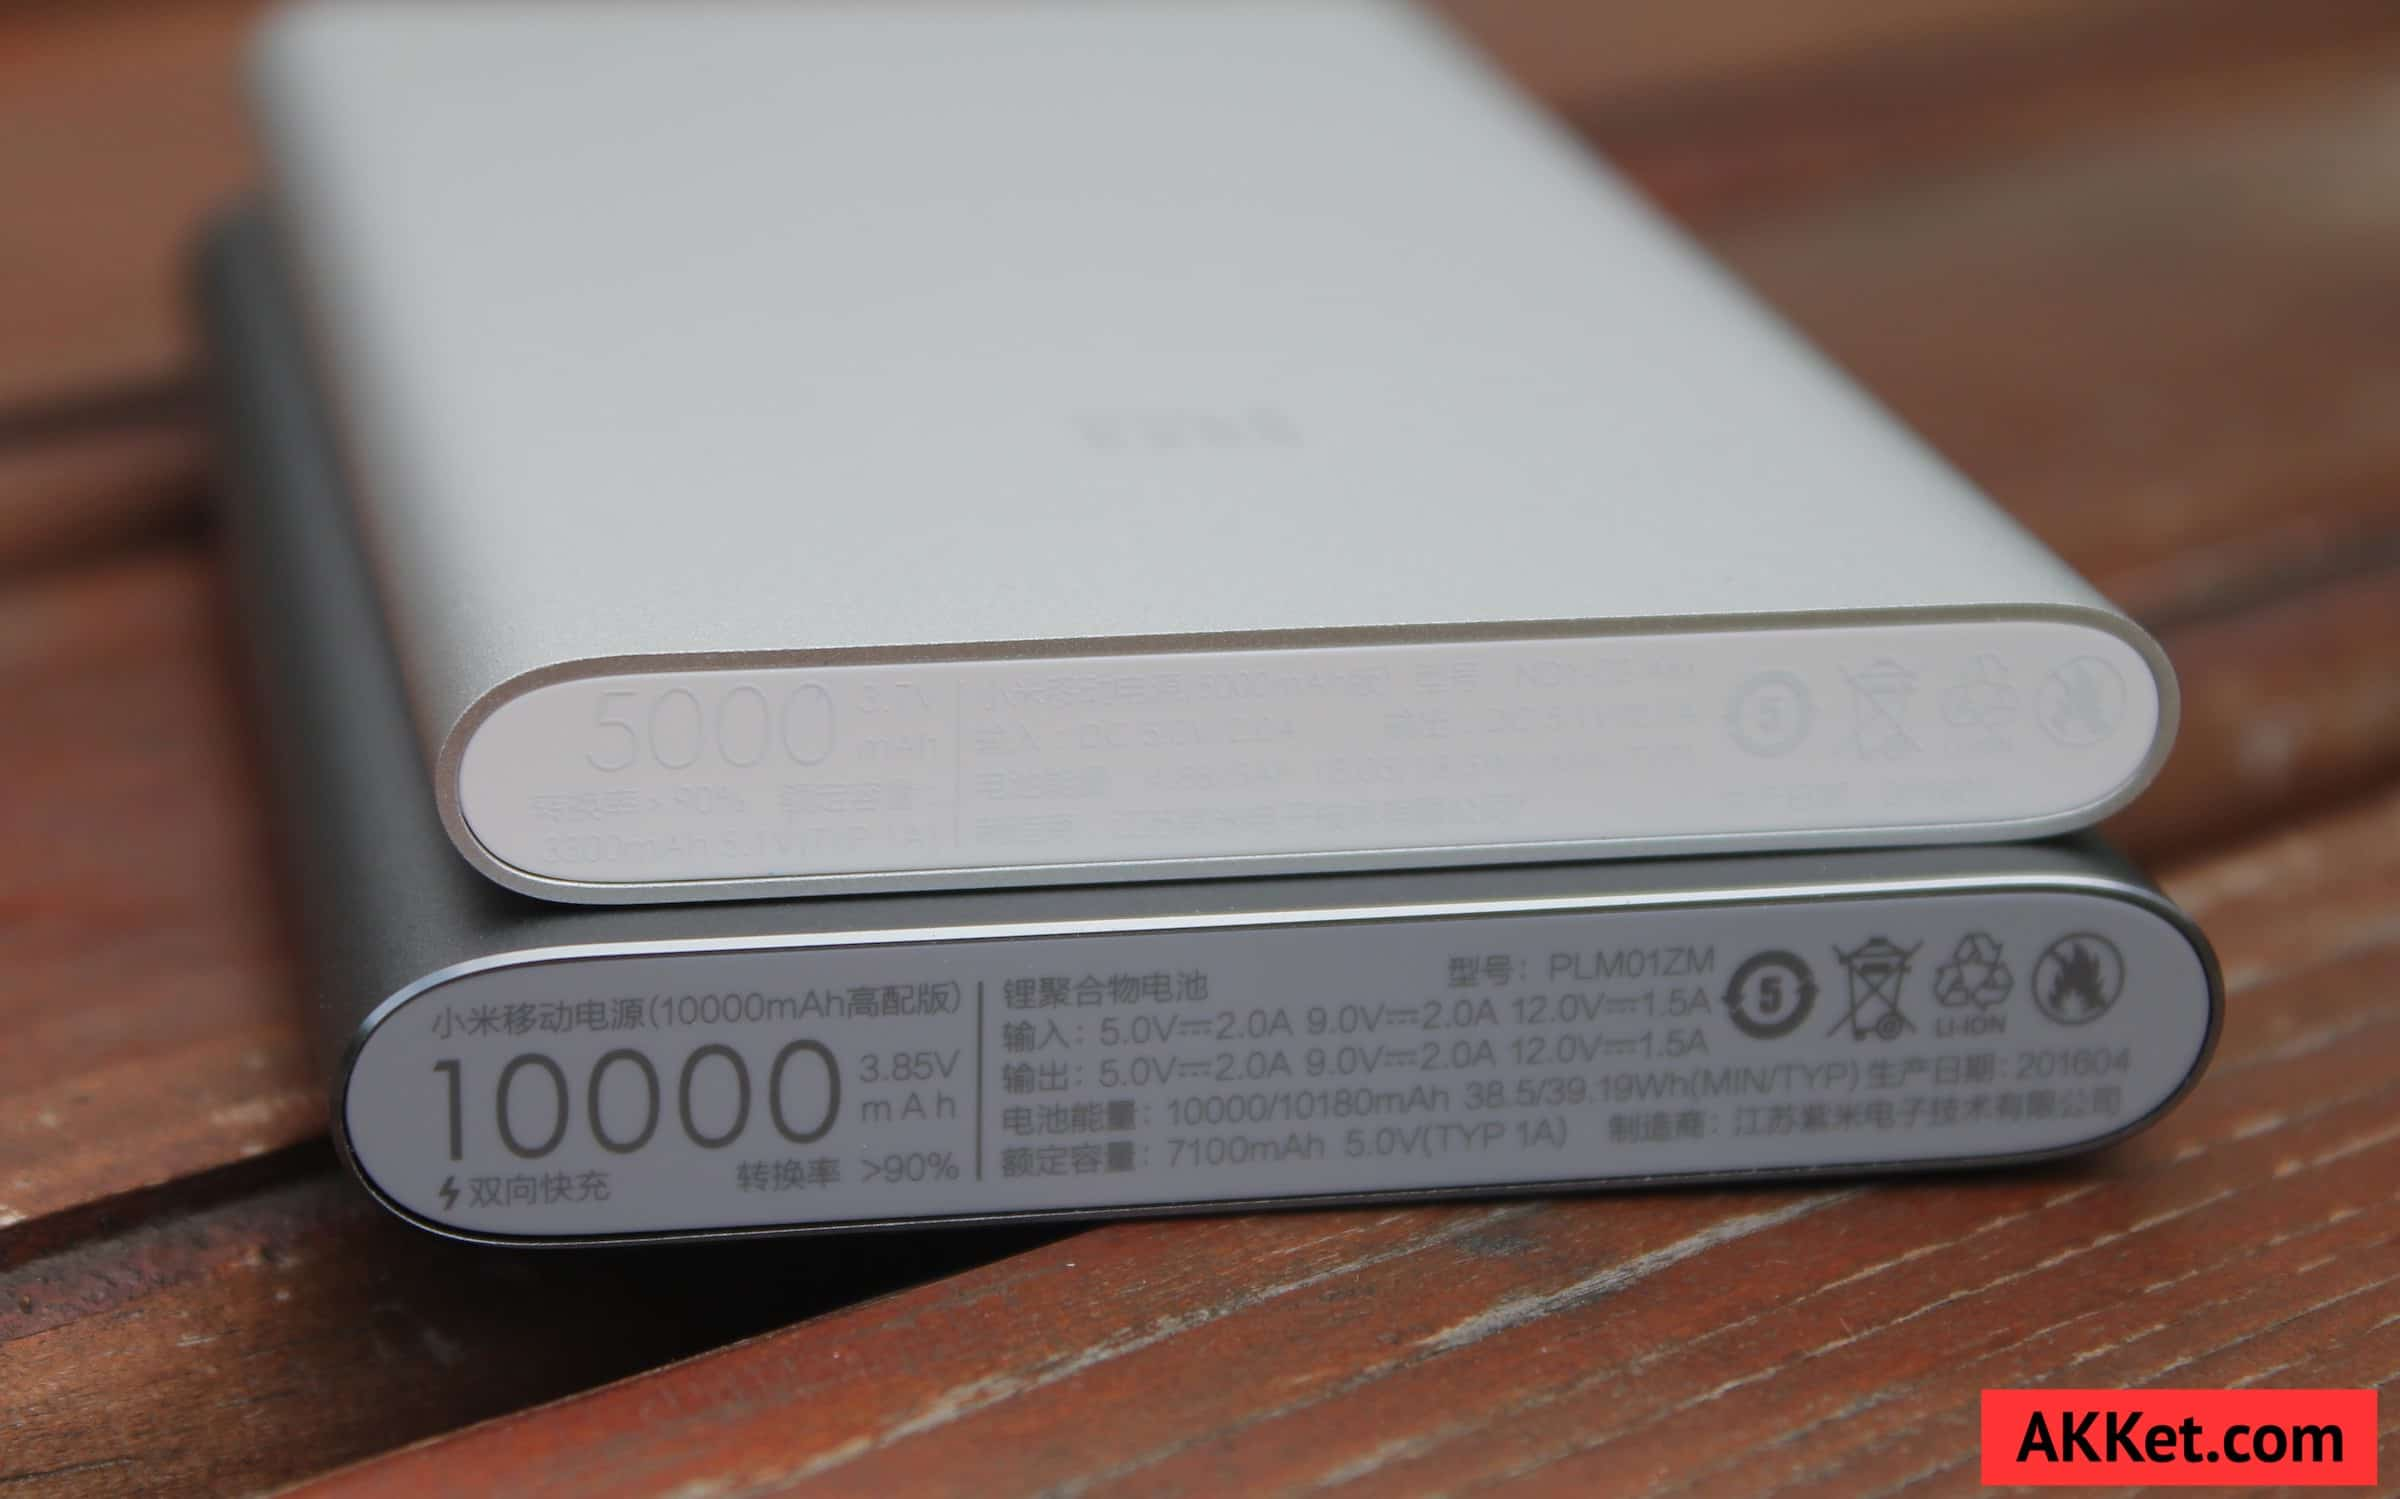 Xiaomi Mi Power Bank Pro 10000 мАч и Xiaomi Mi Power Bank 5000 мАч